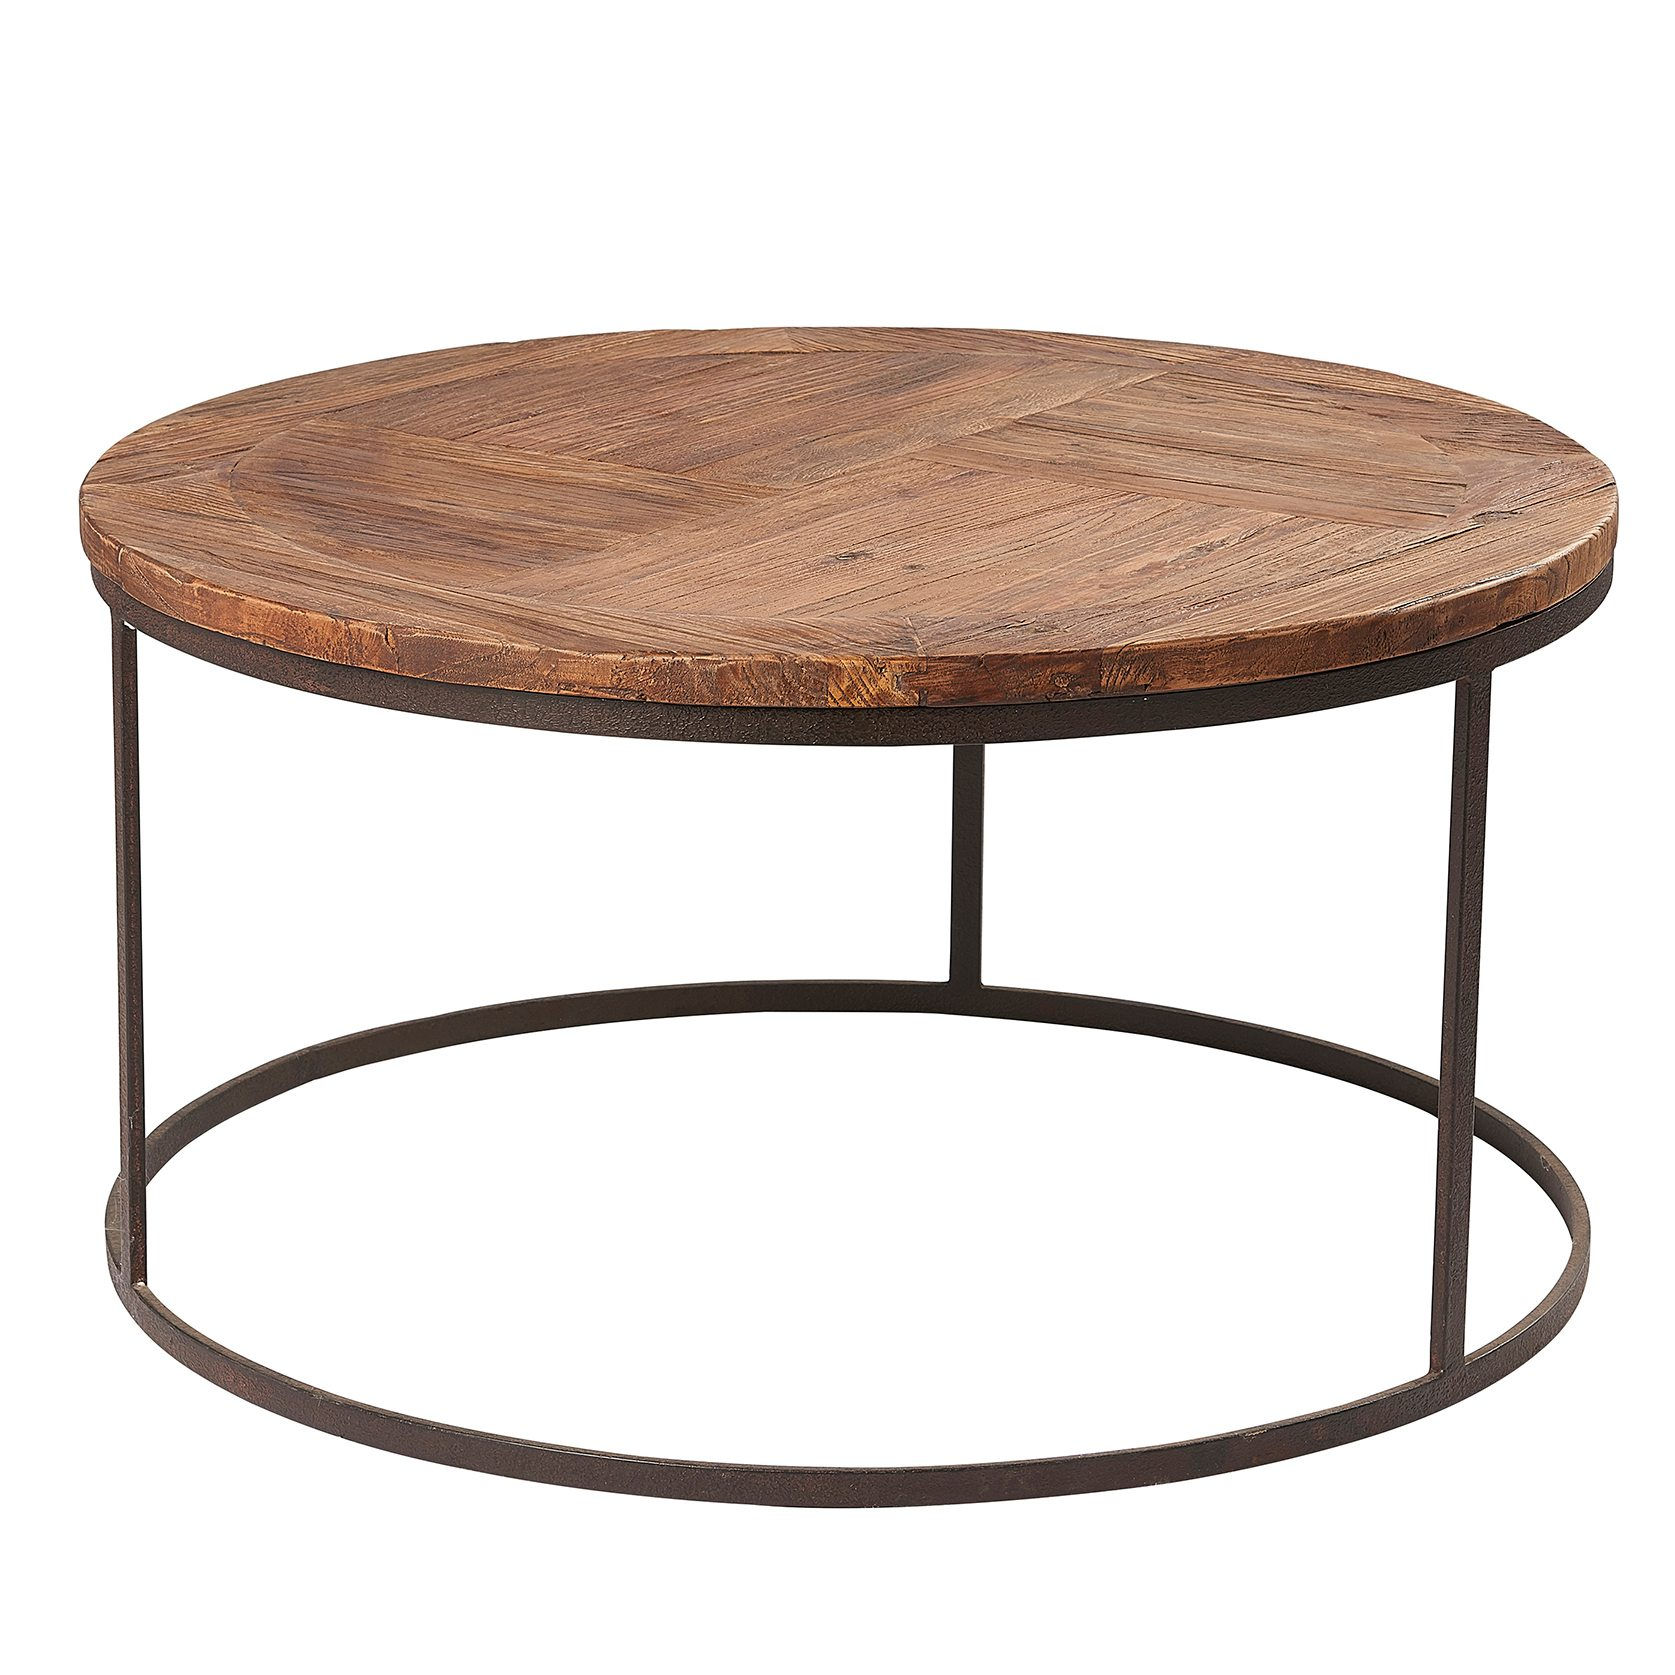 Liberty bay pine round coffee table the haven home interiors for Round pine coffee table